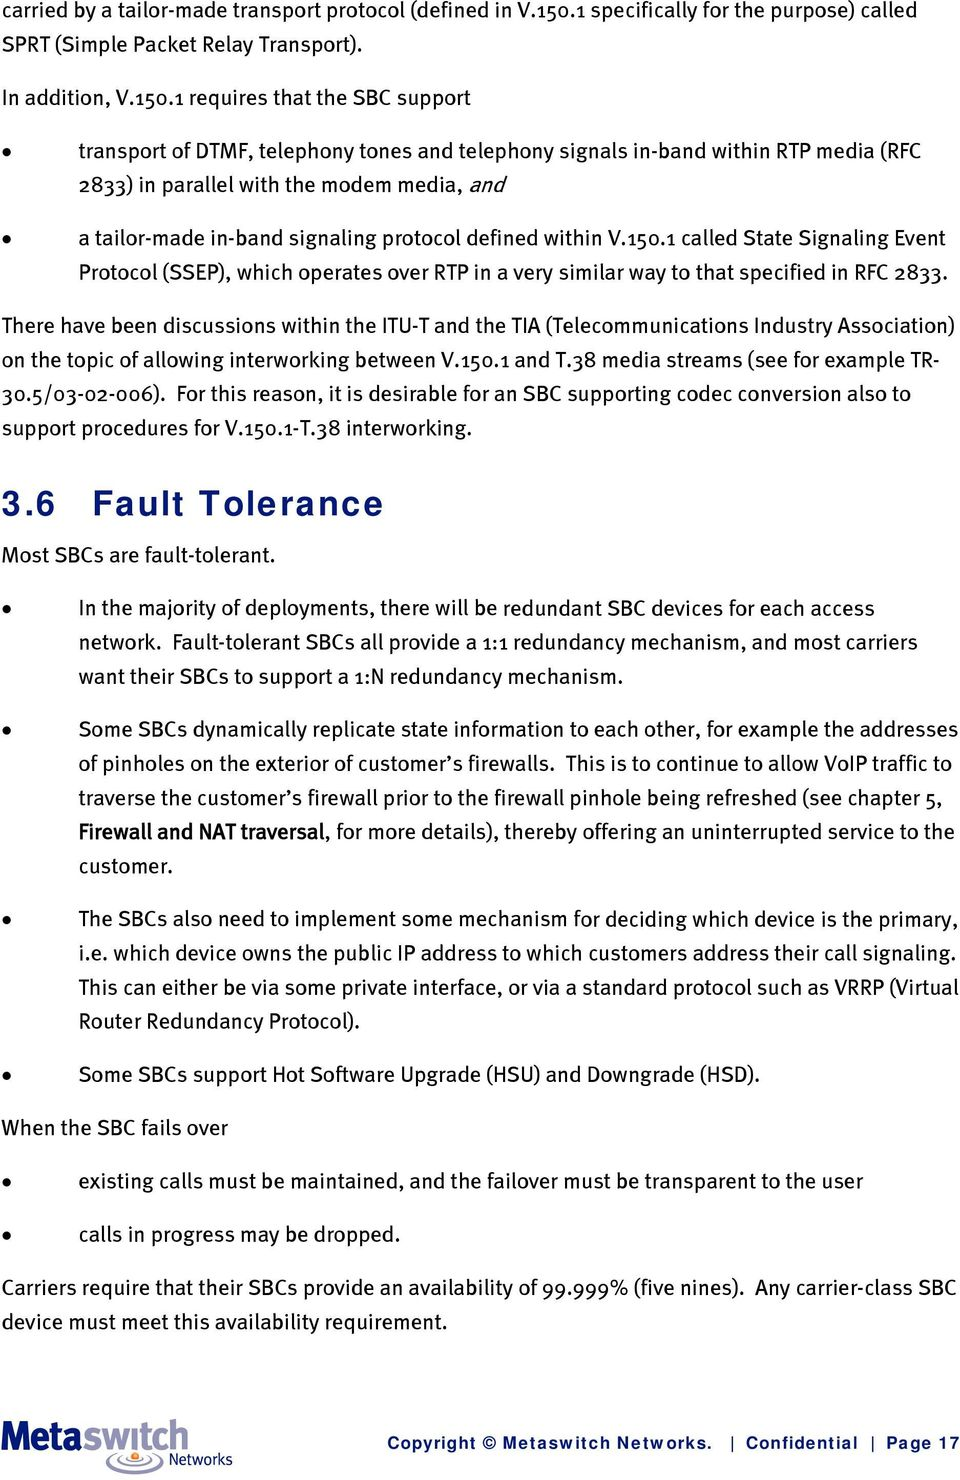 1 requires that the SBC support transport of DTMF, telephony tones and telephony signals in-band within RTP media (RFC 2833) in parallel with the modem media, and a tailor-made in-band signaling